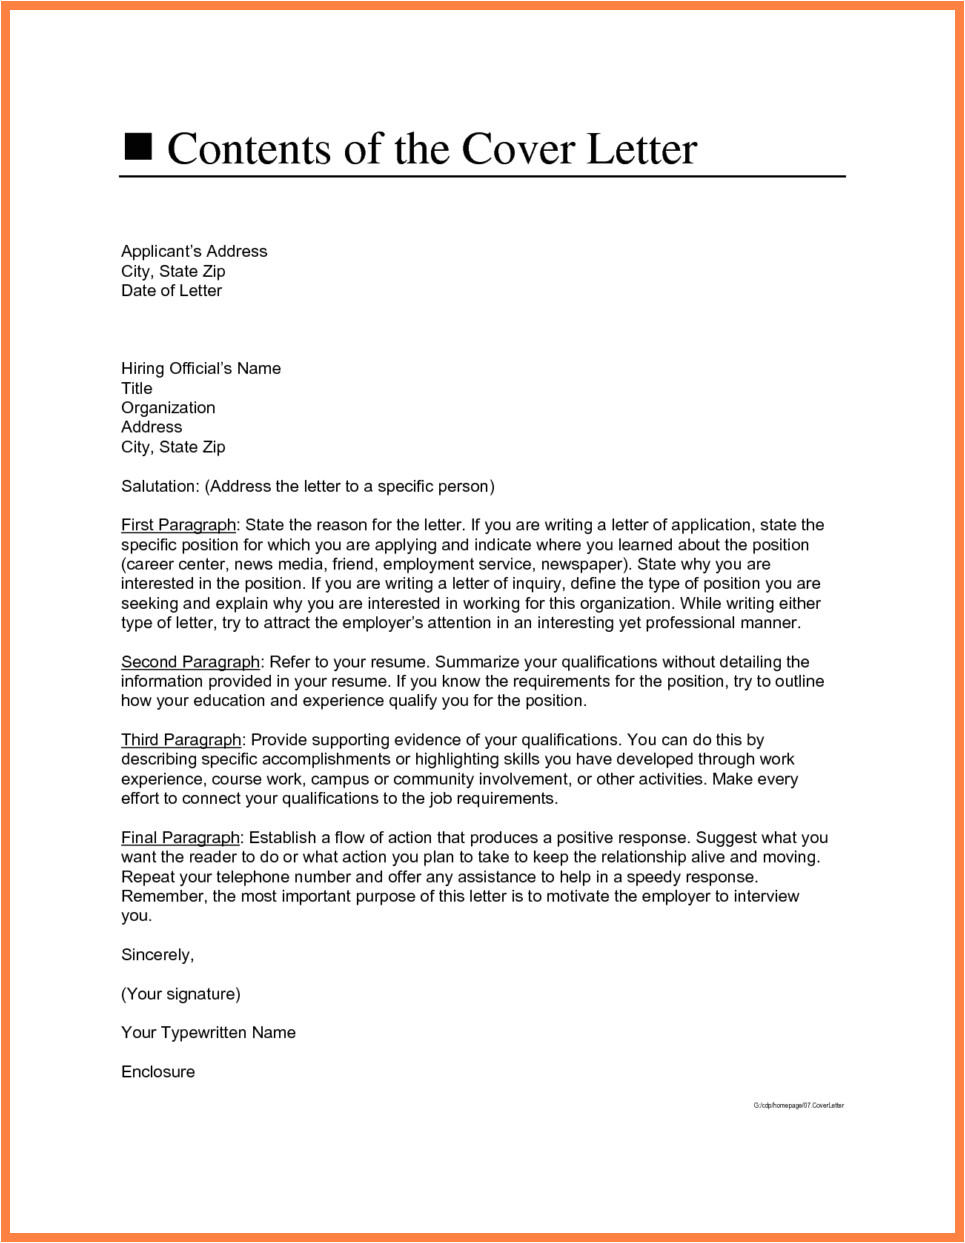 Cover Letter without Knowing Name 5 Cover Letter Address Marital Settlements Information